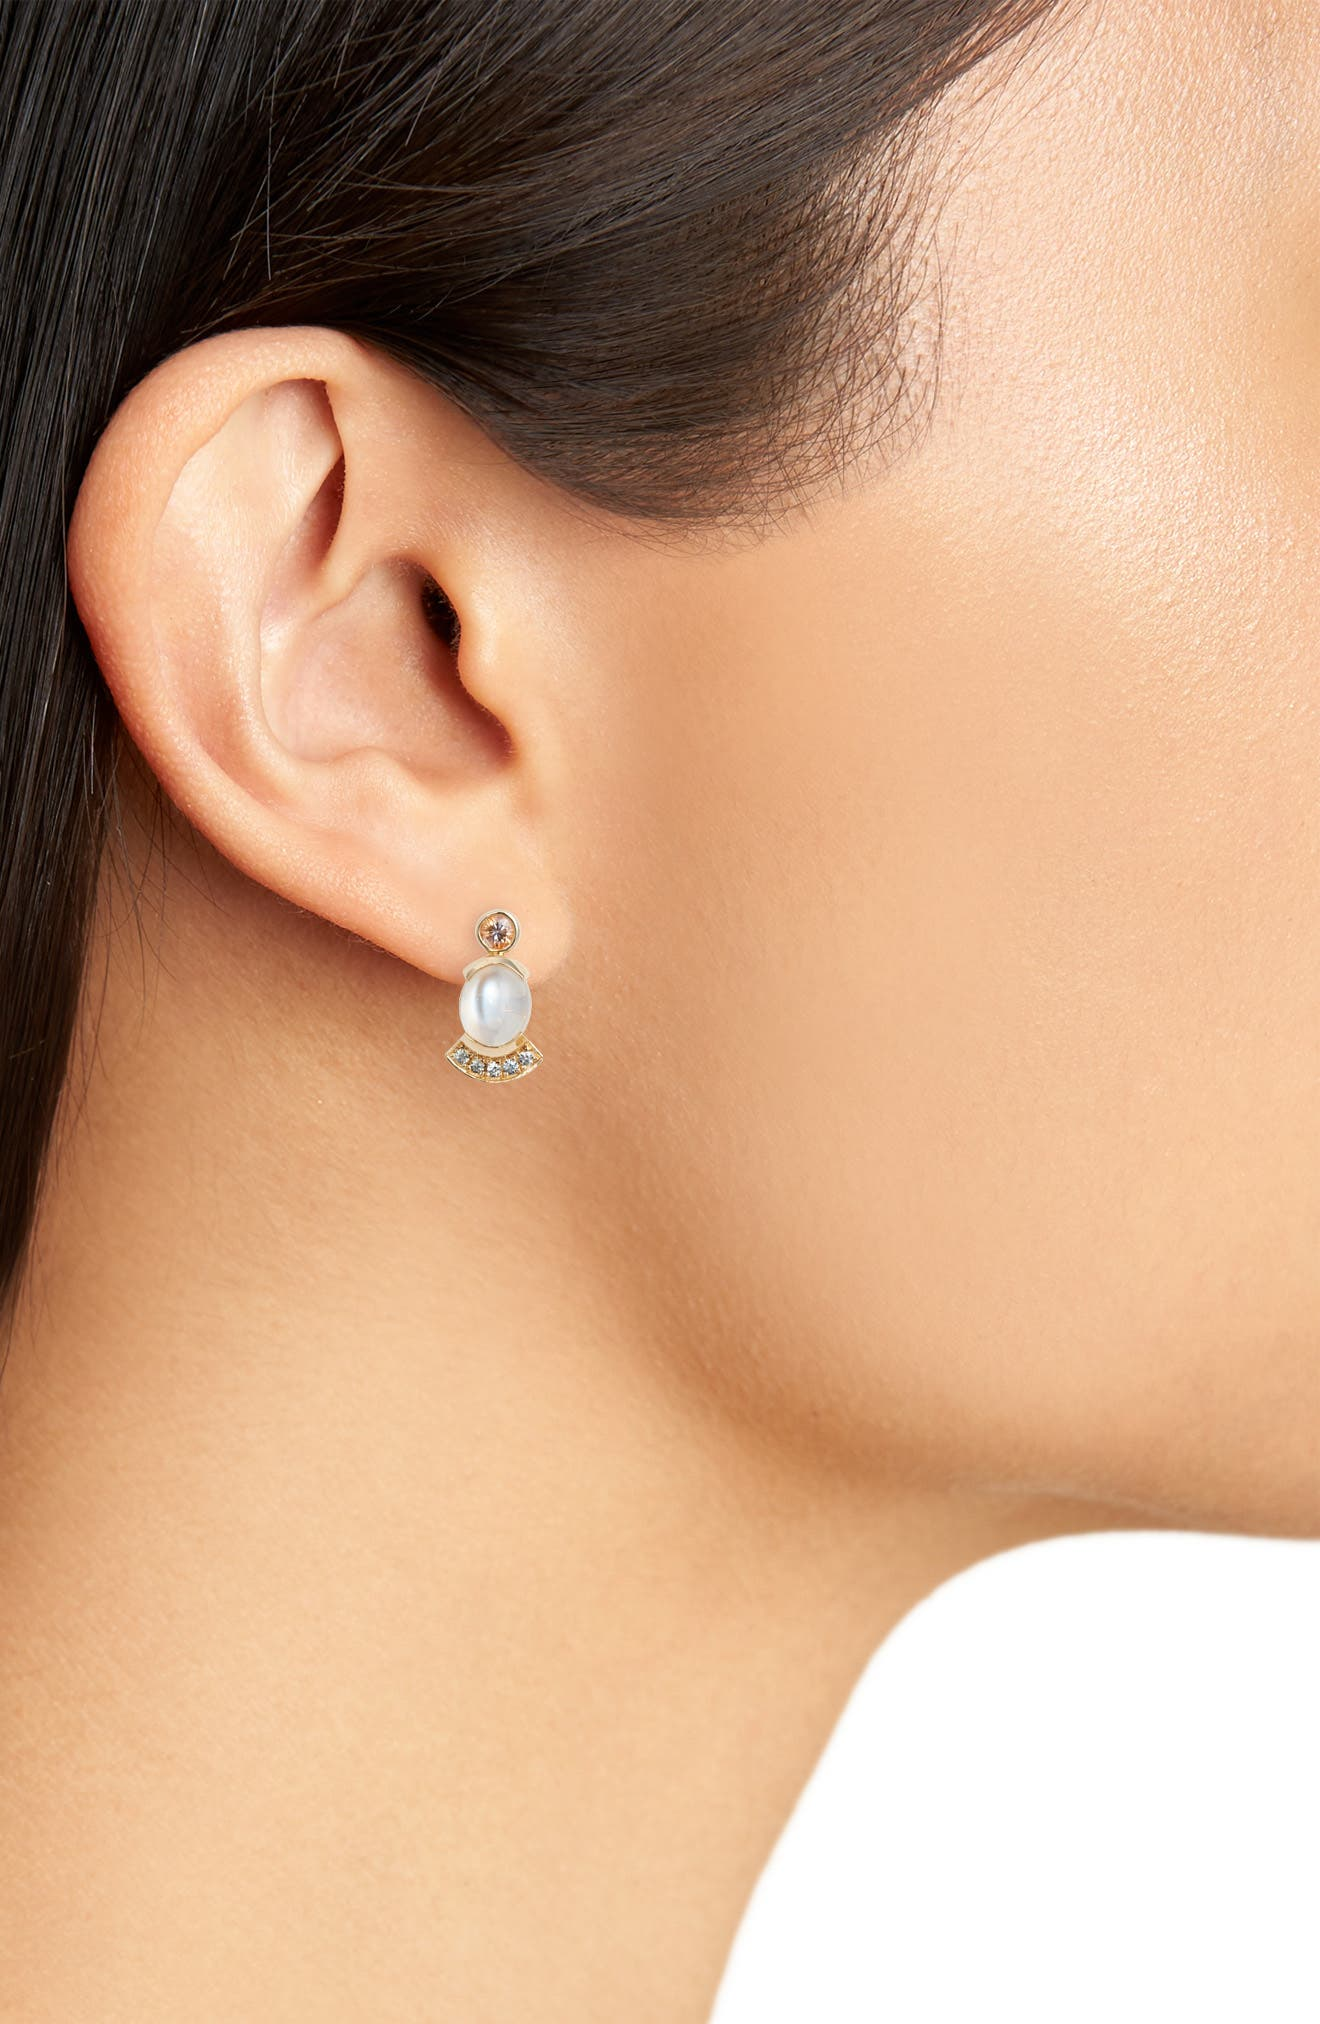 Moonstone & Sapphire Drop Earrings,                             Alternate thumbnail 2, color,                             710